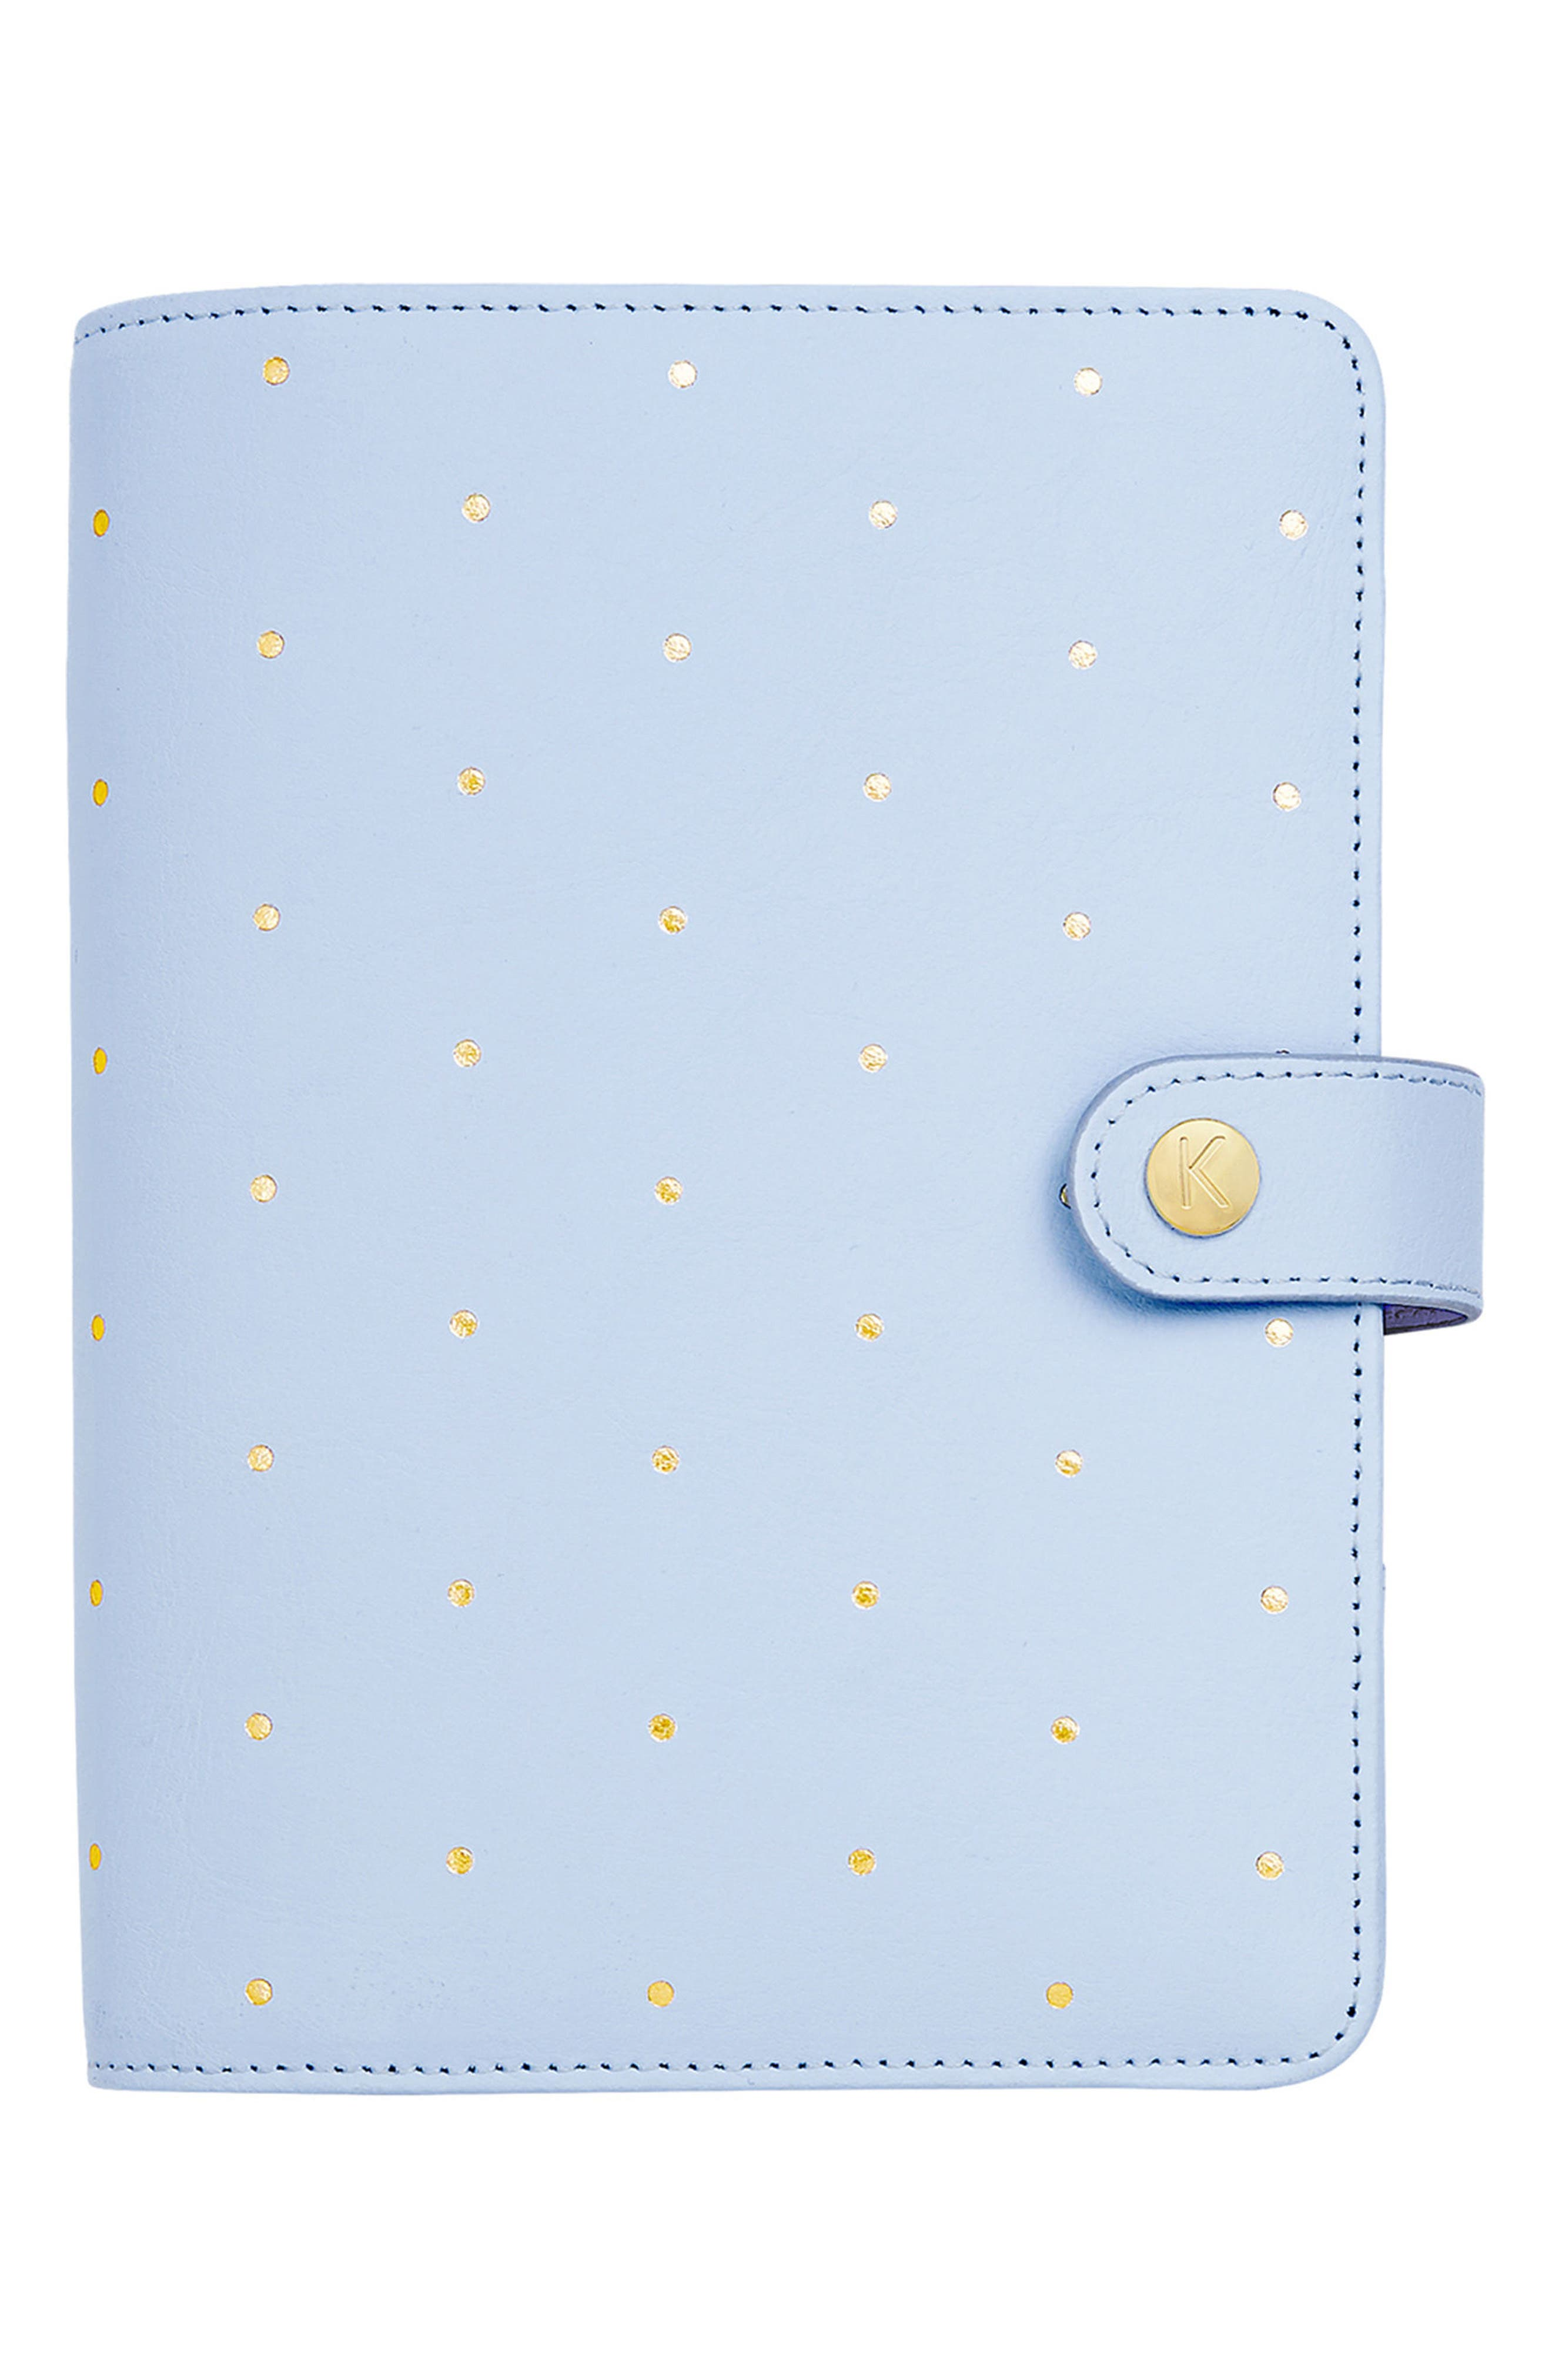 Medium Leather Personal Planner,                         Main,                         color, 400